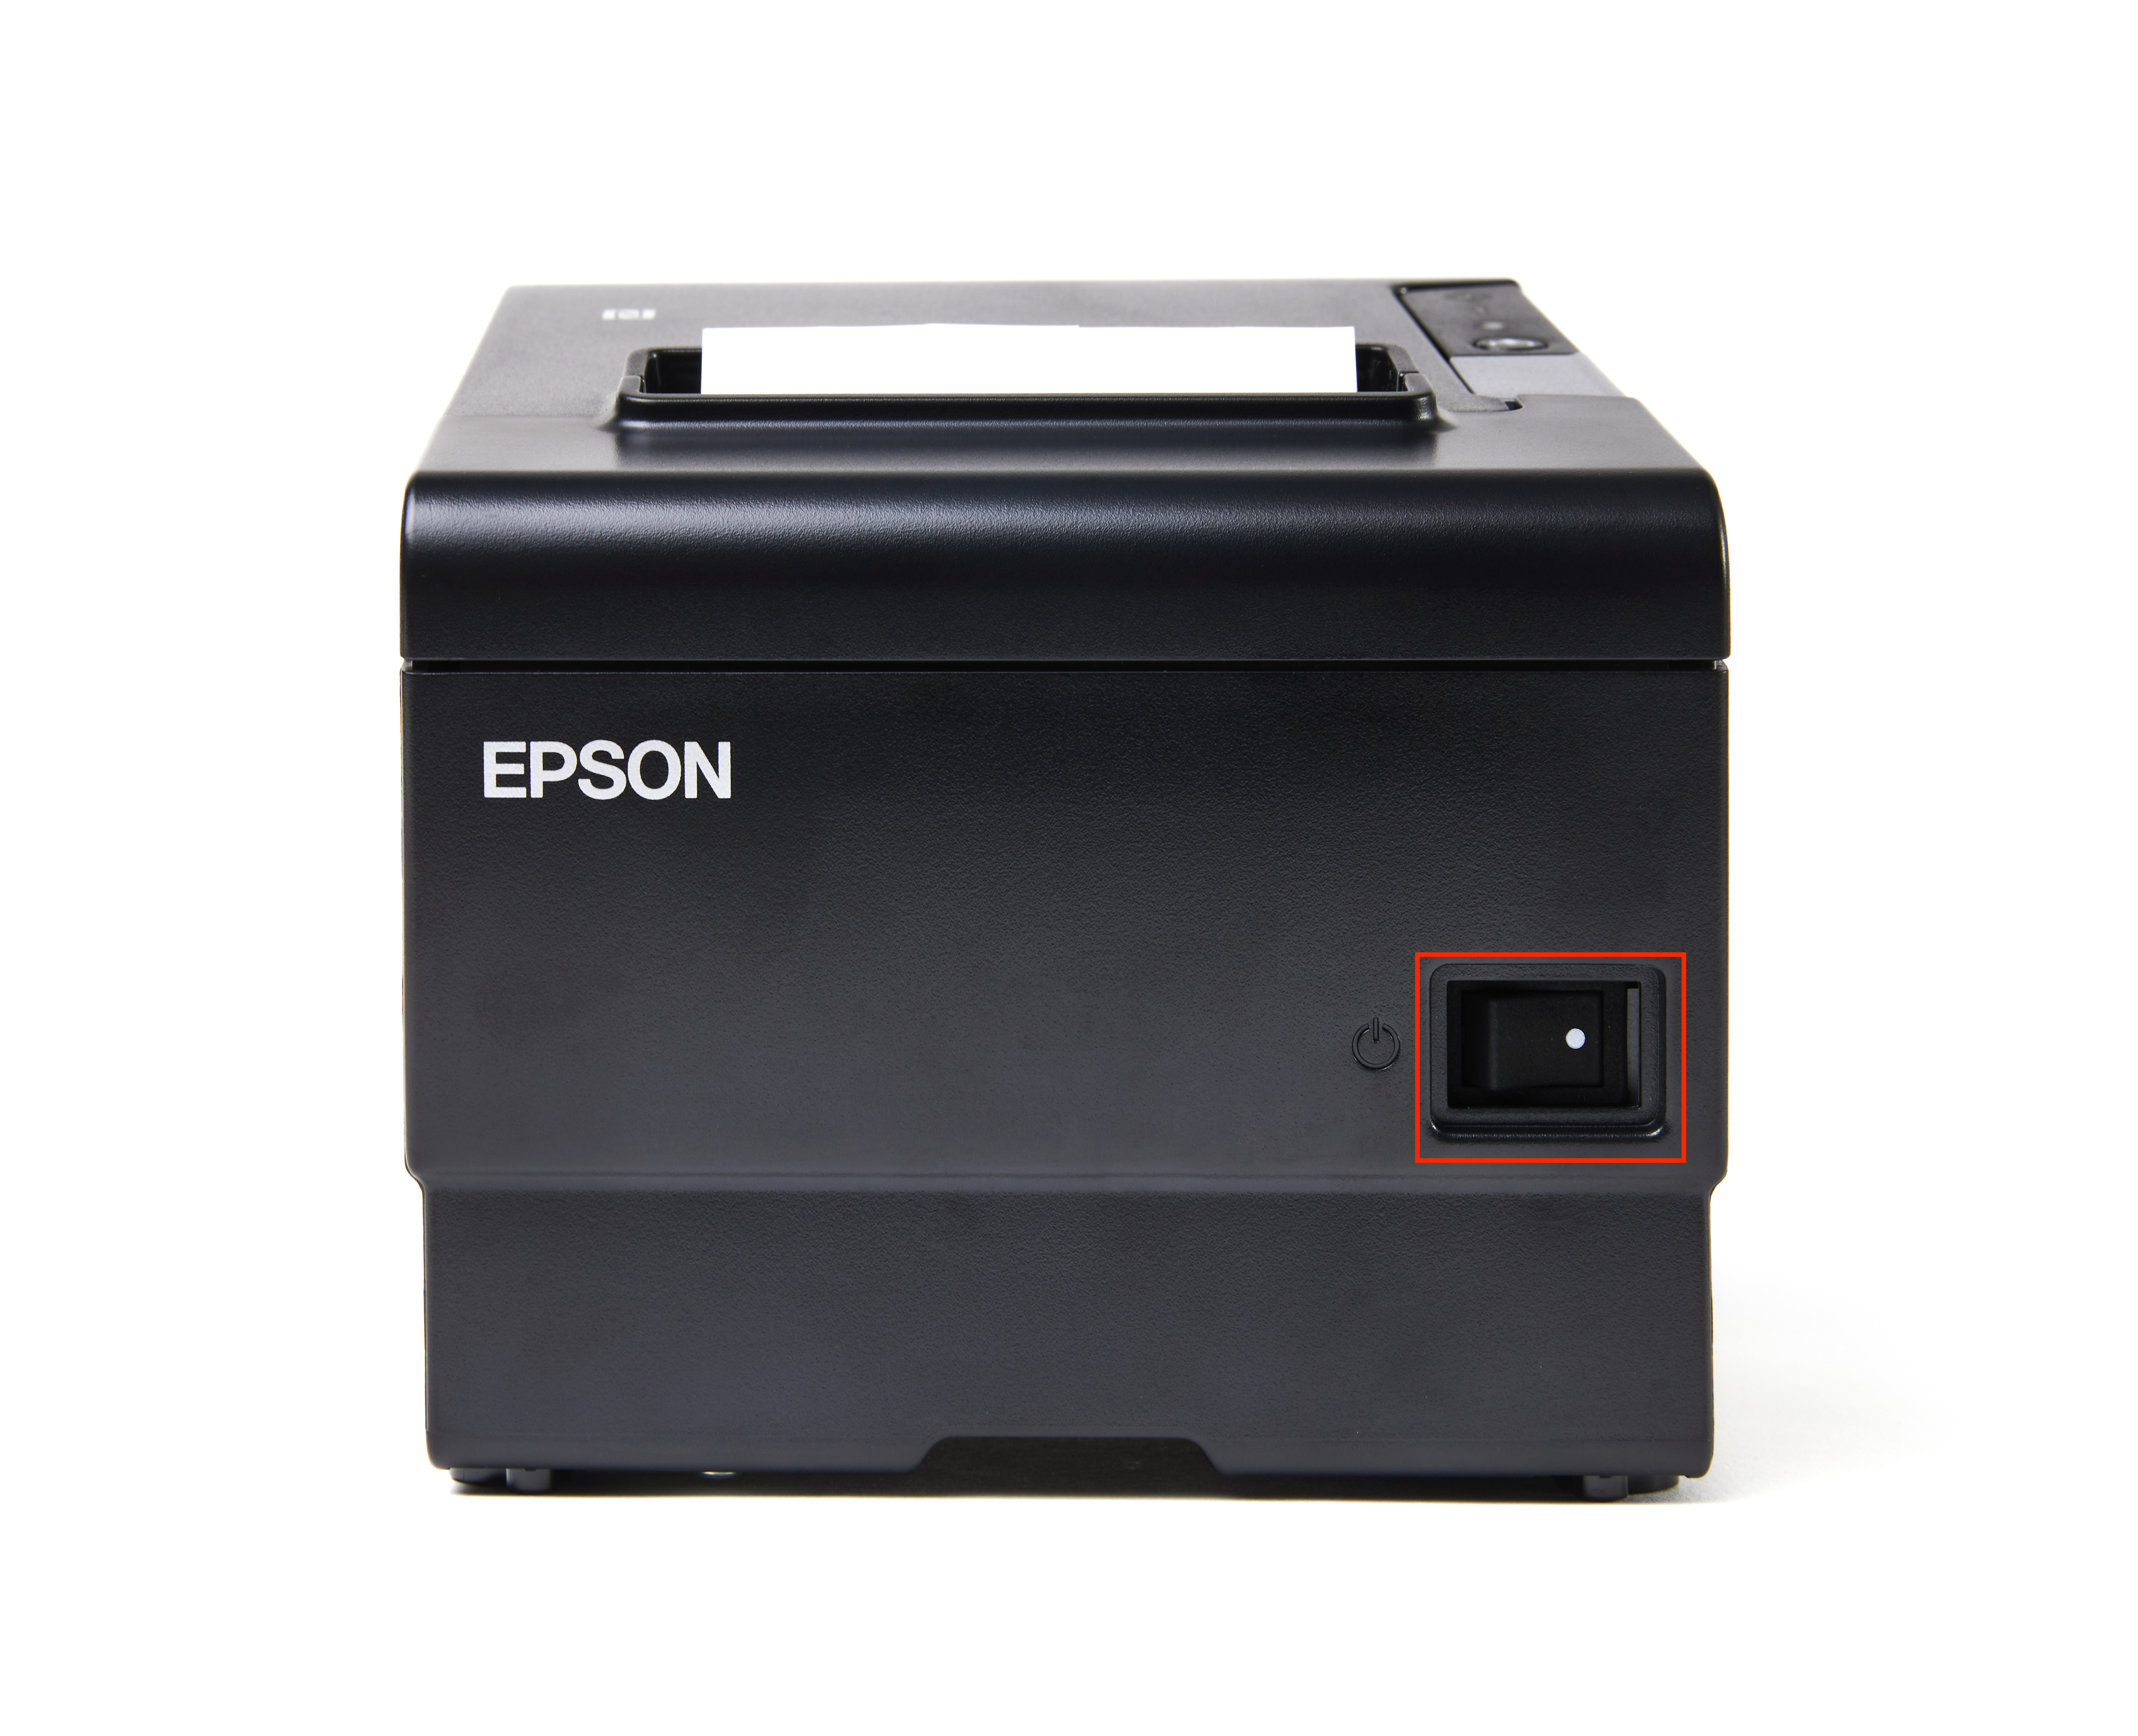 Epson_Product_2020_0162_edit_copy.jpg